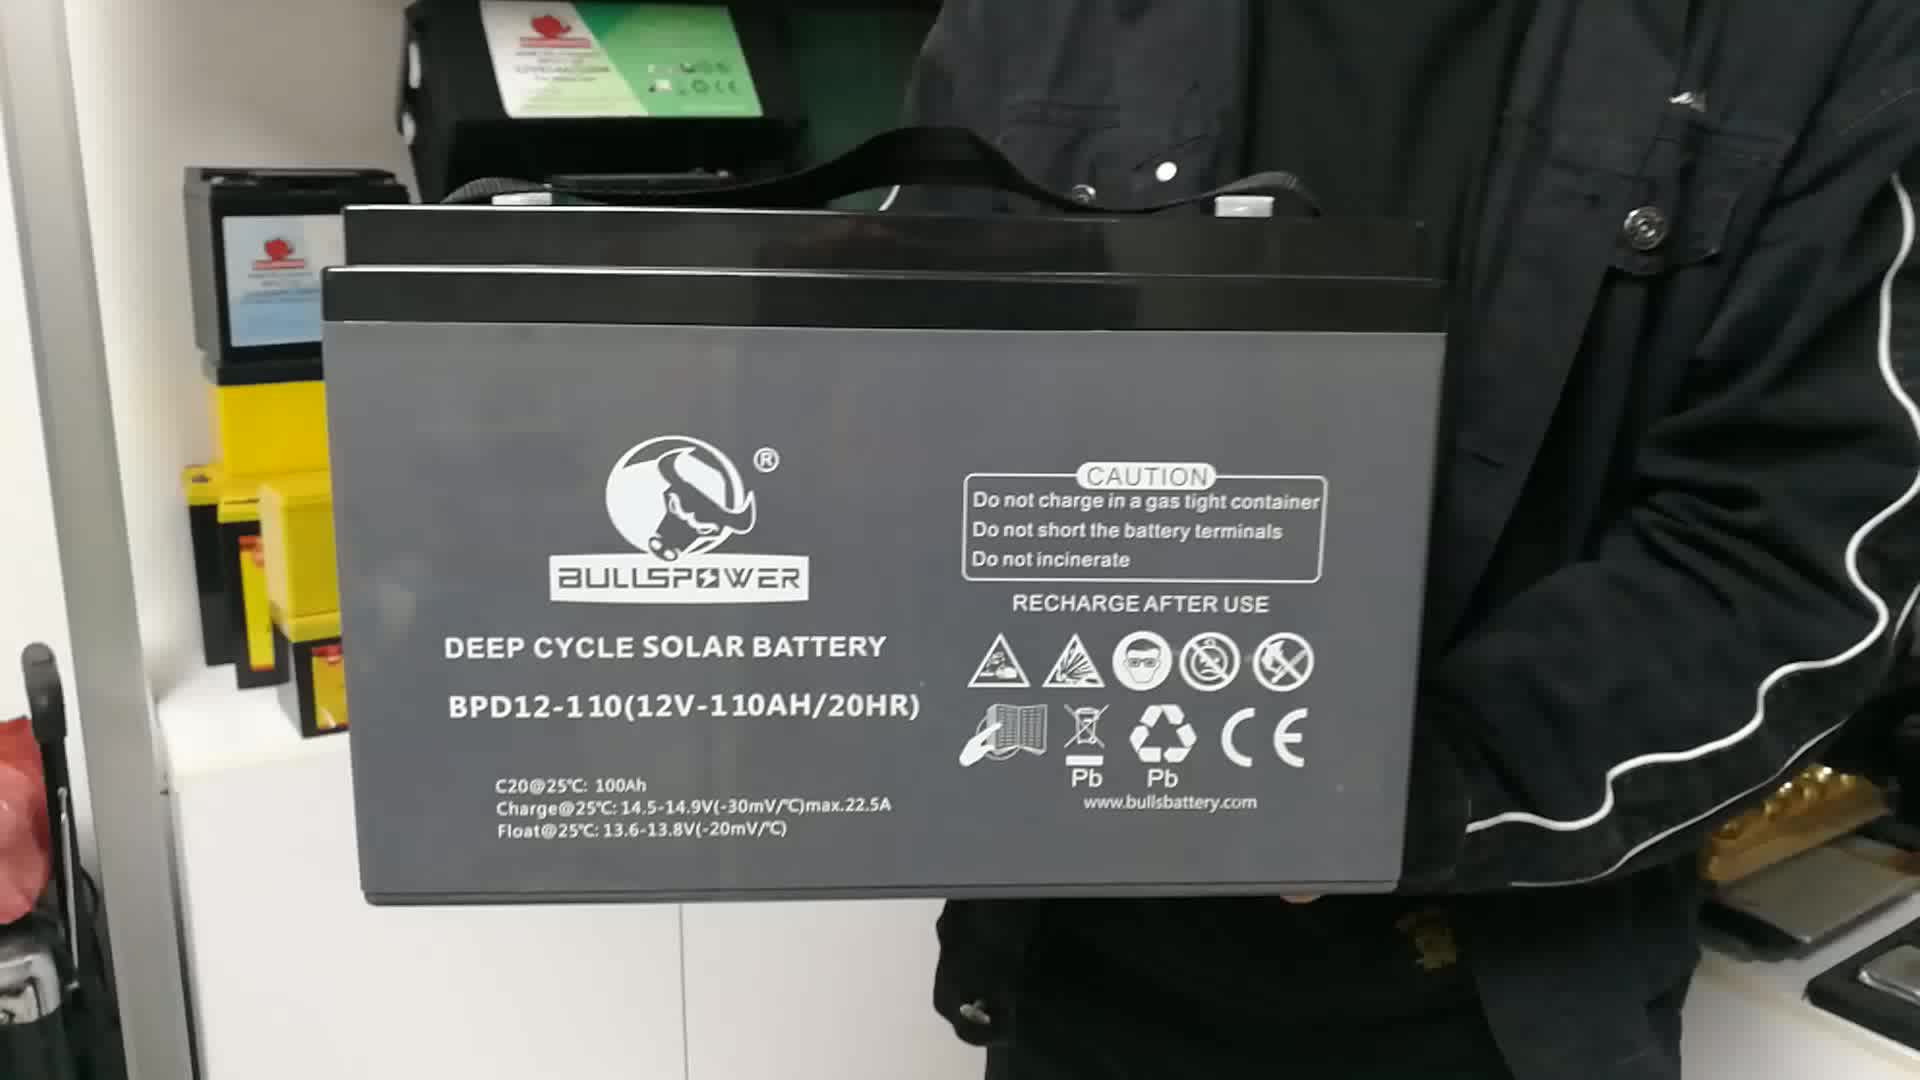 Bullspower AGM VRLA Solar akku batterie deep cycle gel 12v 100a battery